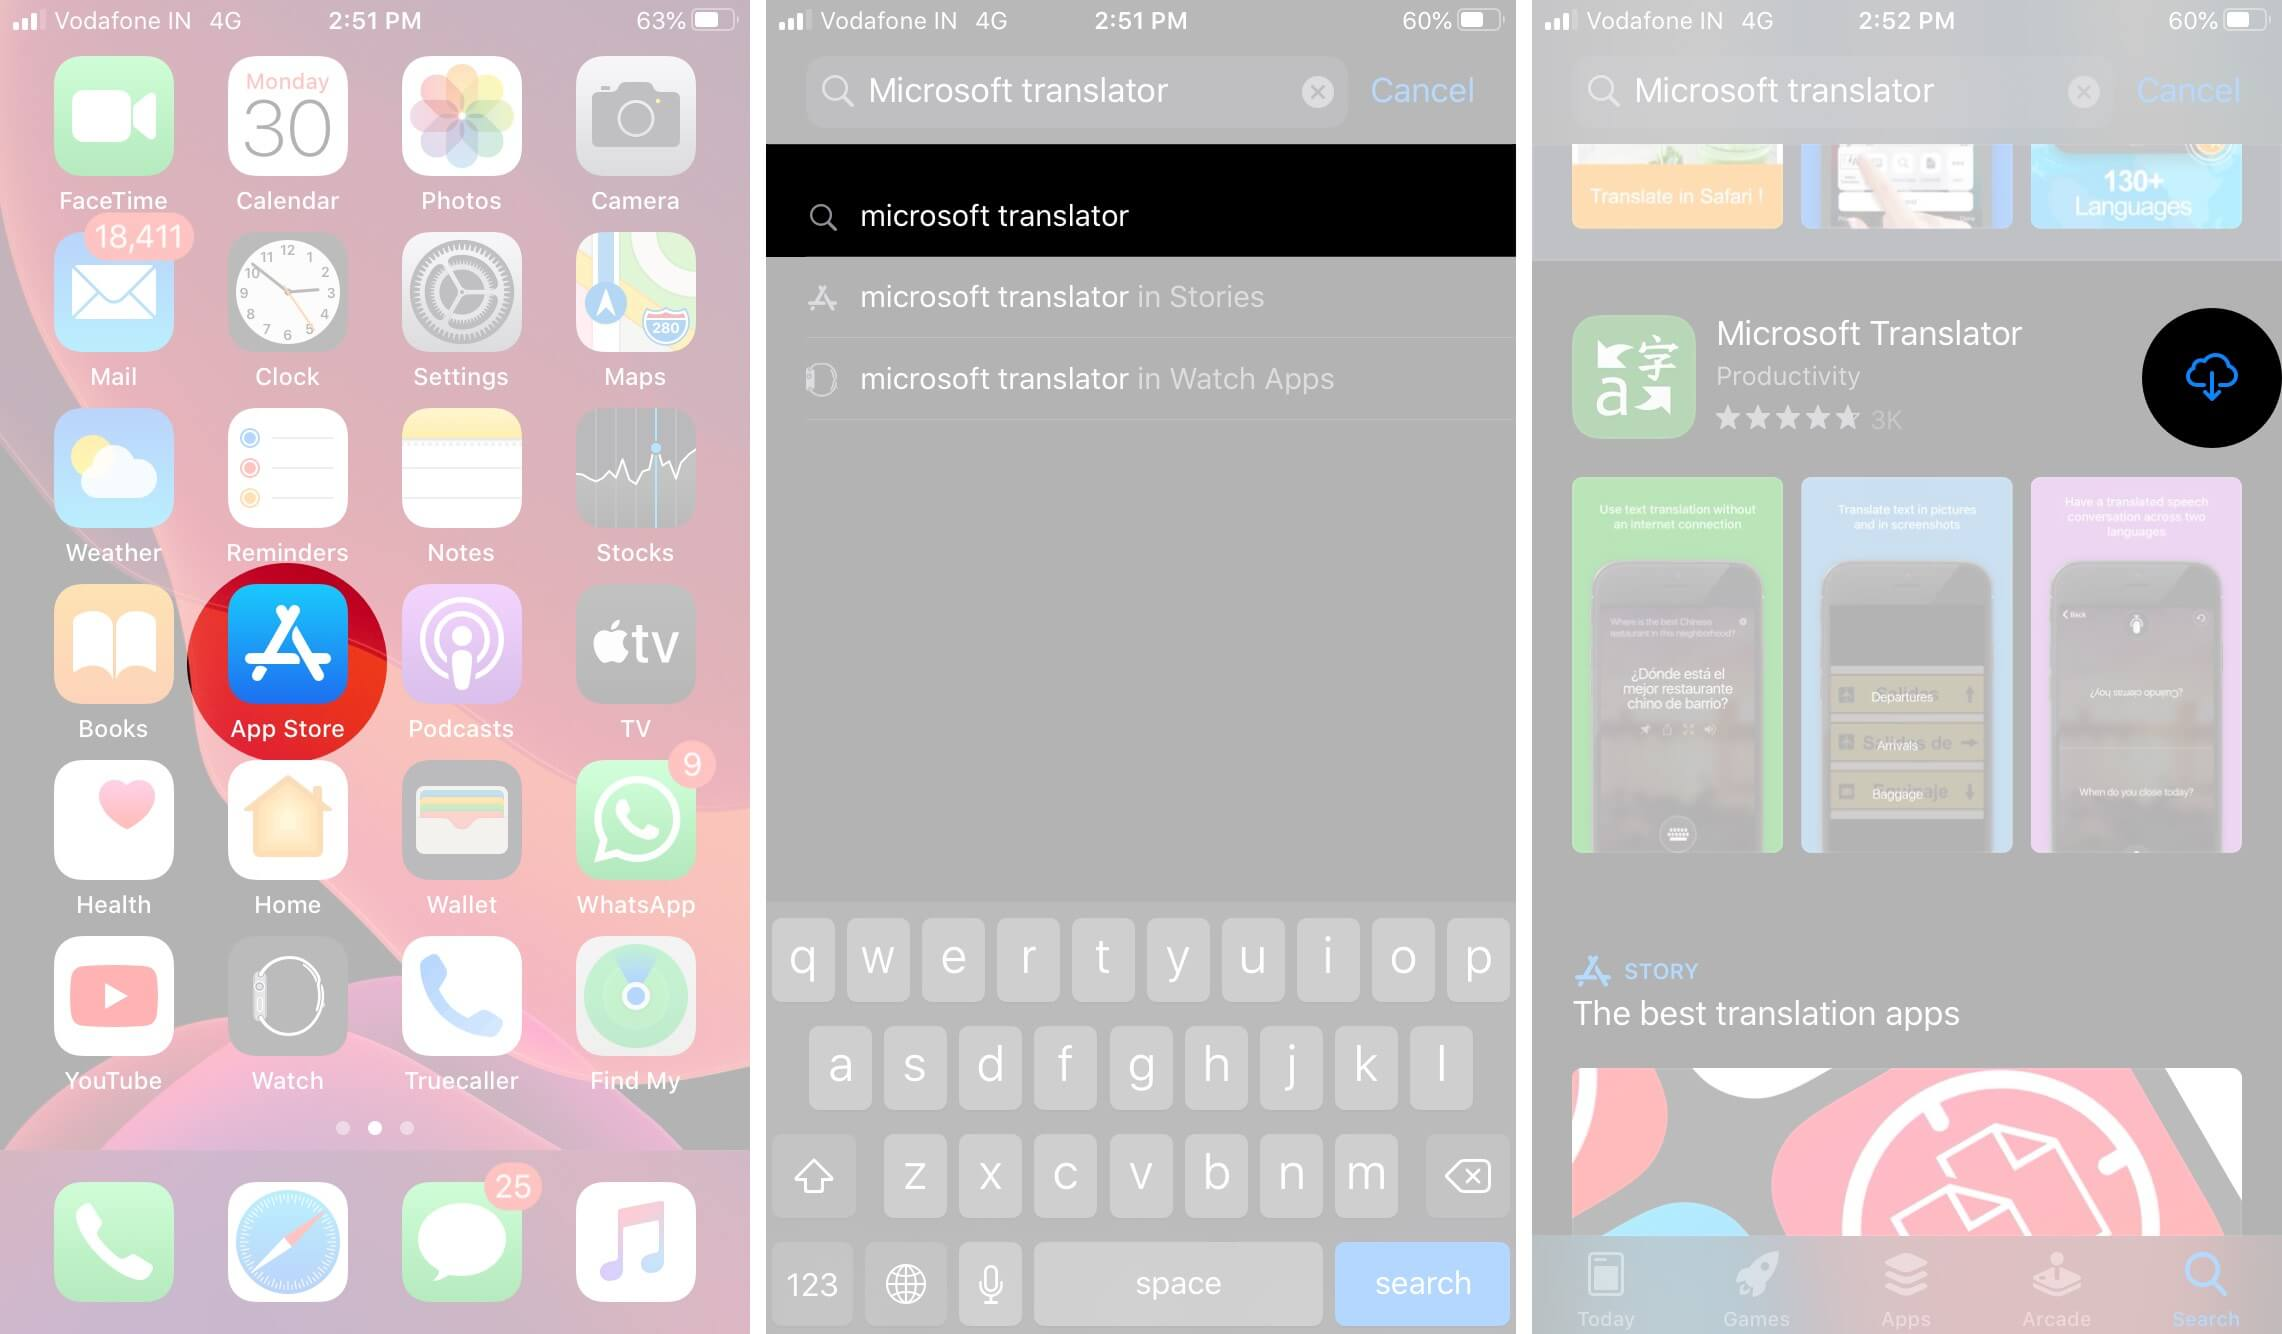 Open App Store to Download Microsoft Translator on iPhone